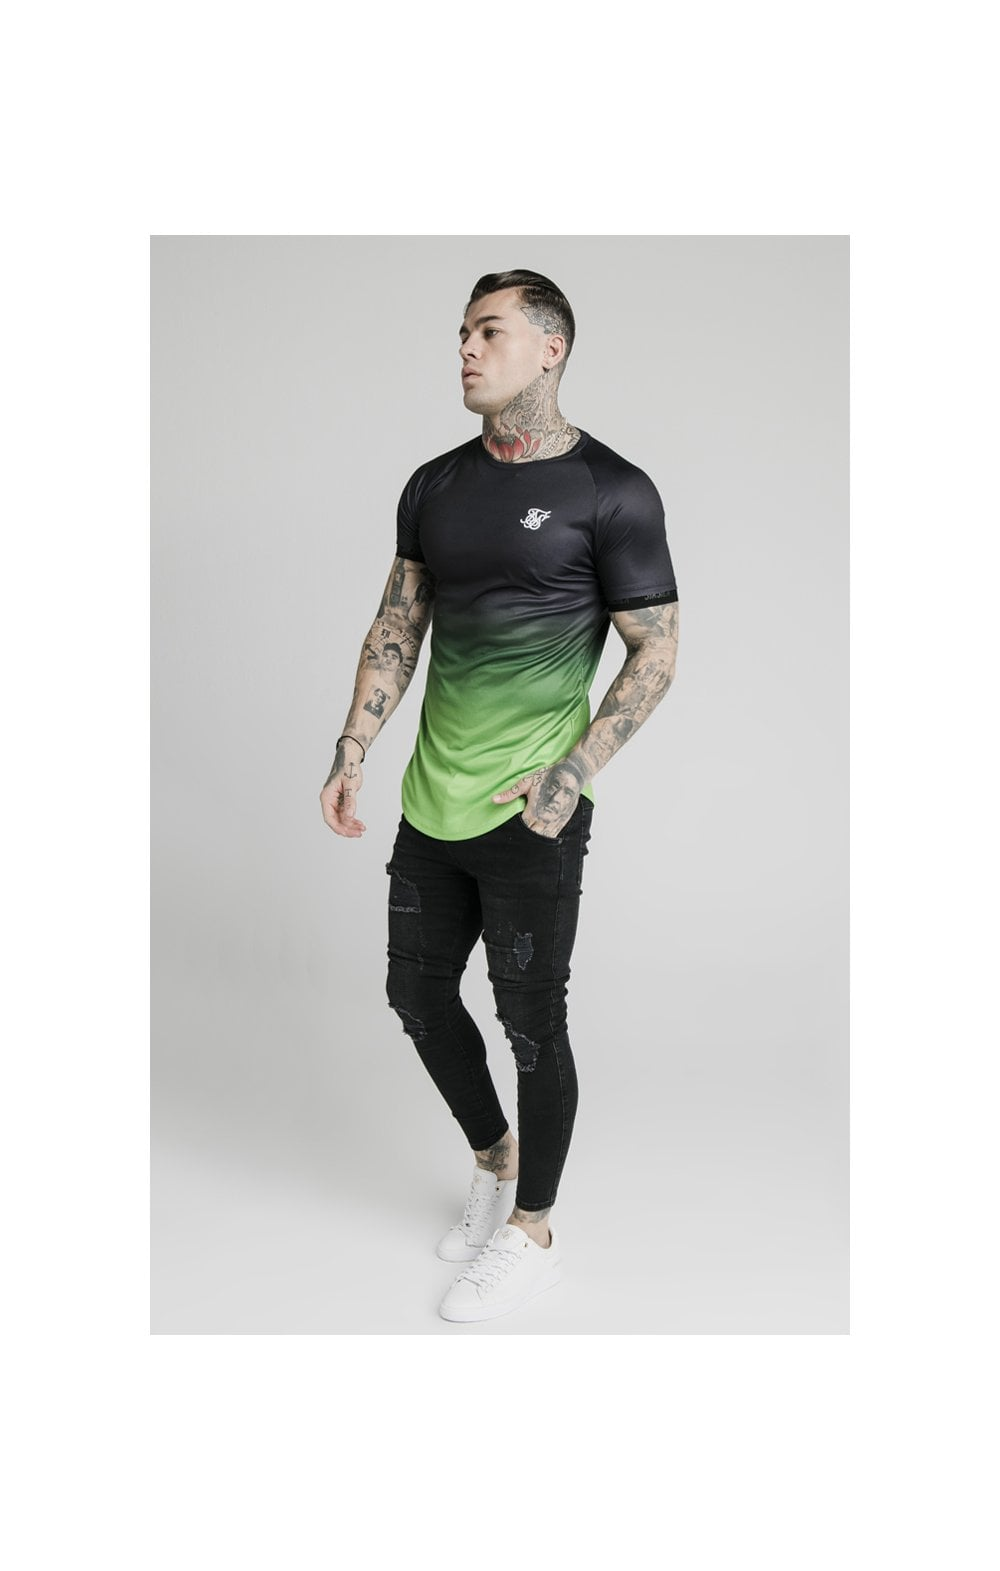 Load image into Gallery viewer, SikSilk S/S Fade Tech Tee - Black & Fluro (4)